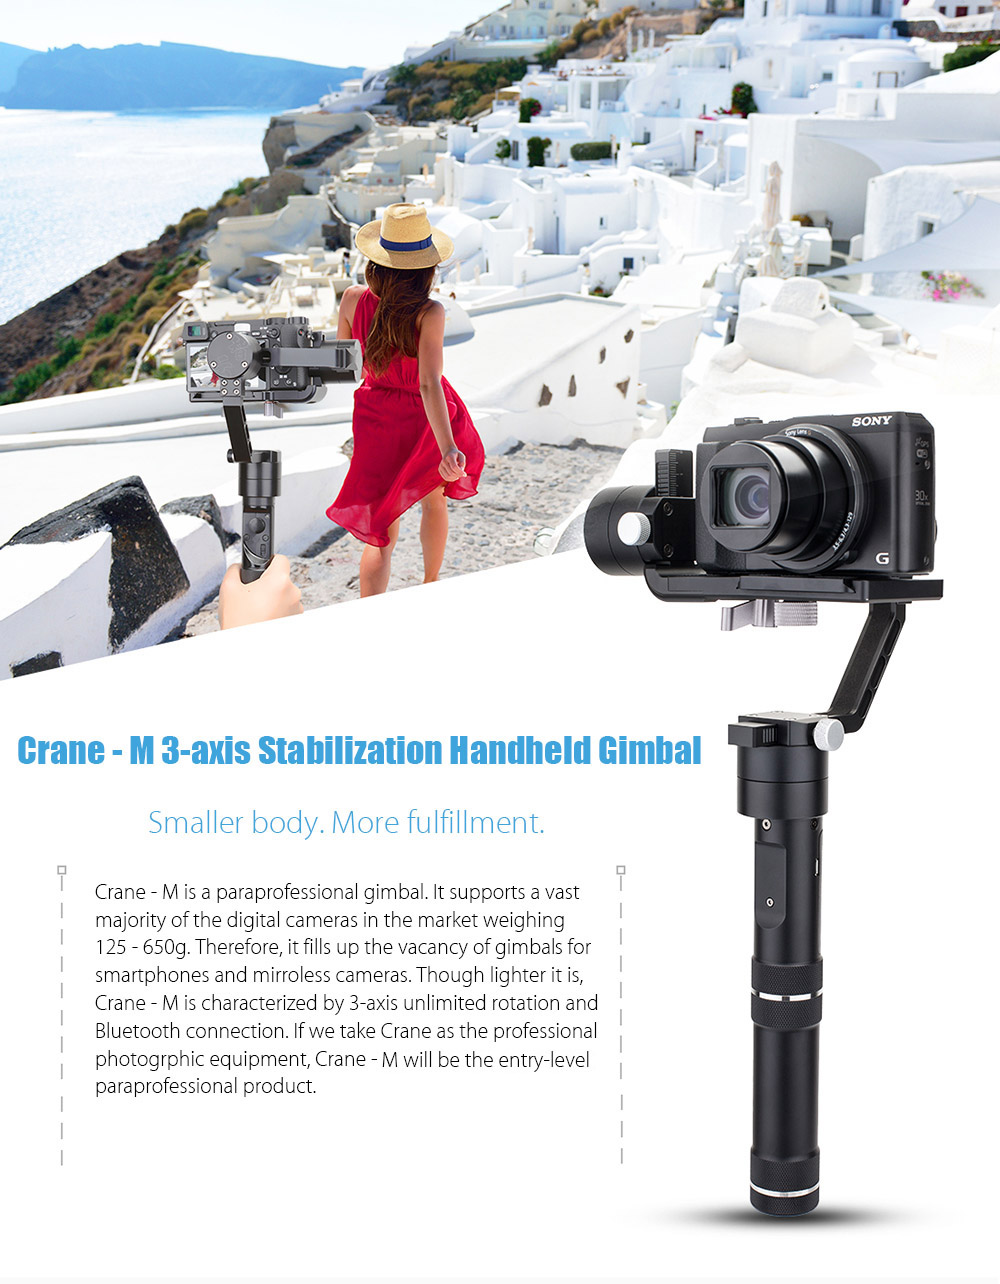 Zhiyun Crane M Handheld Gimbal 39845 Free Shipping Tripod Pole For 3axis Smooth Q 3 Package Contents 1 X Battery Compartment 2 26500 37v 3600mah Li Ion Usb Cable English Manual Quick Start